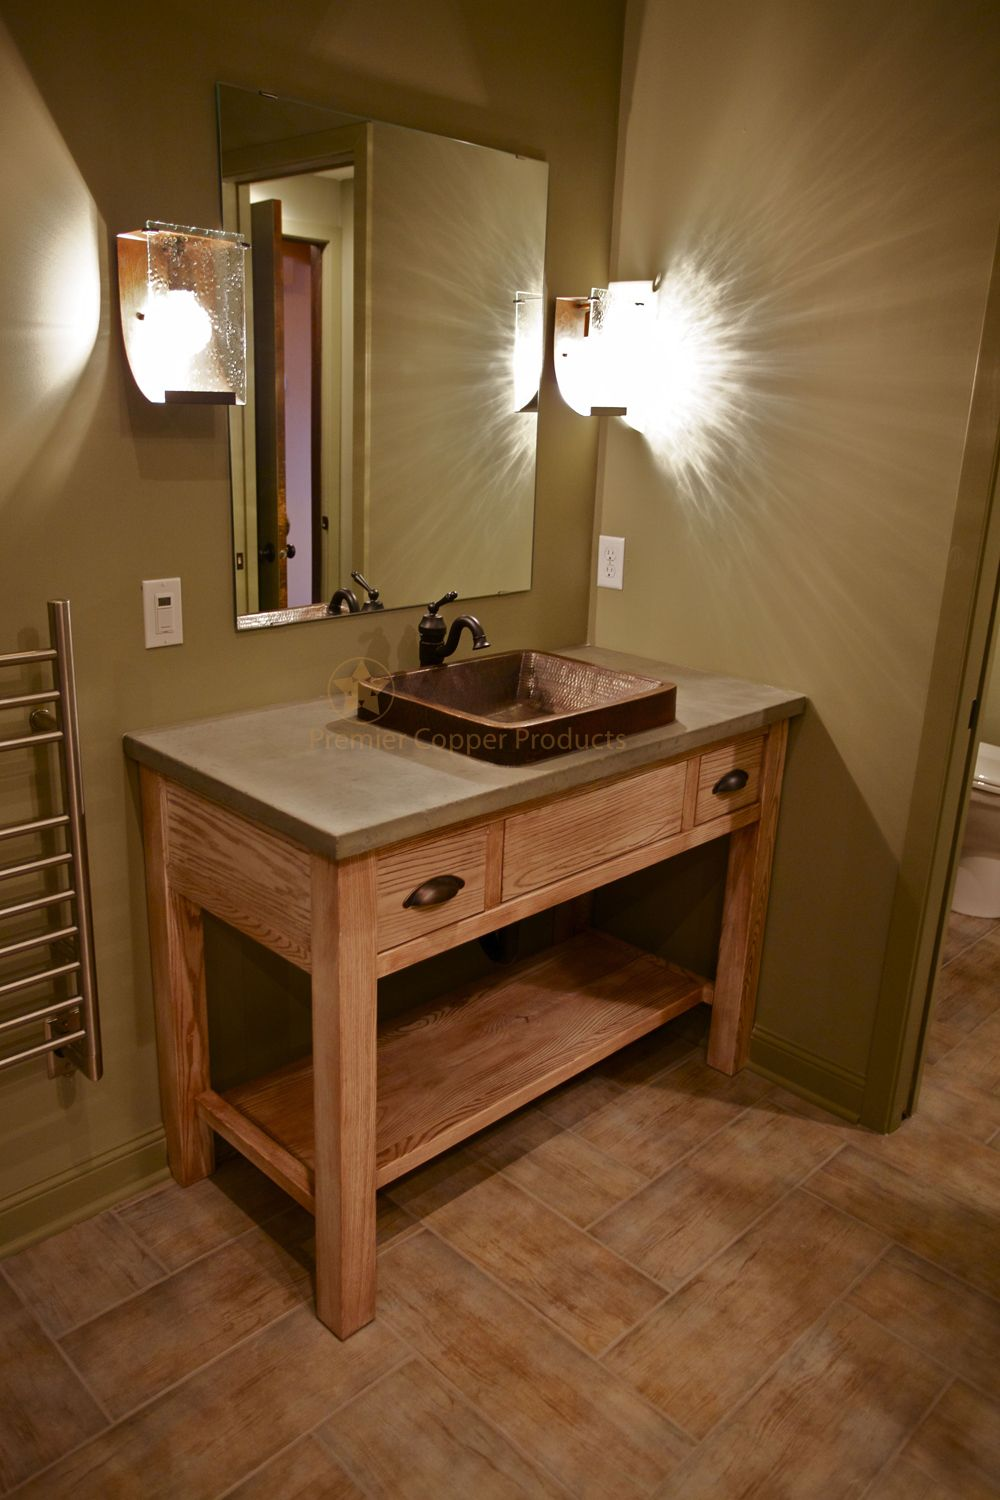 Featured On Diy Networks Bath Crashers This Rectangle Copper. Exclusive  Design Copper Vessel Sinks Bathroom Hammered Sink With Simple Rushmore ...